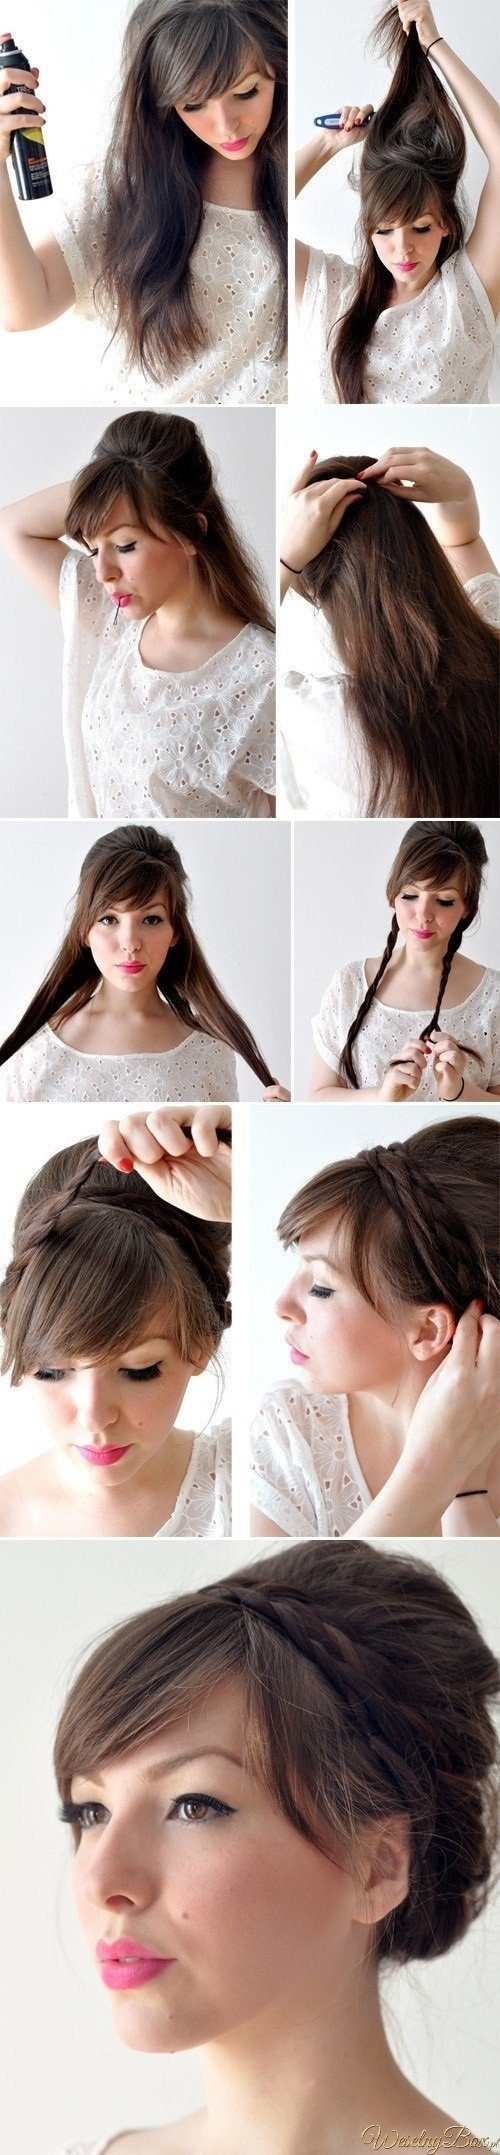 best hairstyles images on pinterest hairstyle make up and plaits